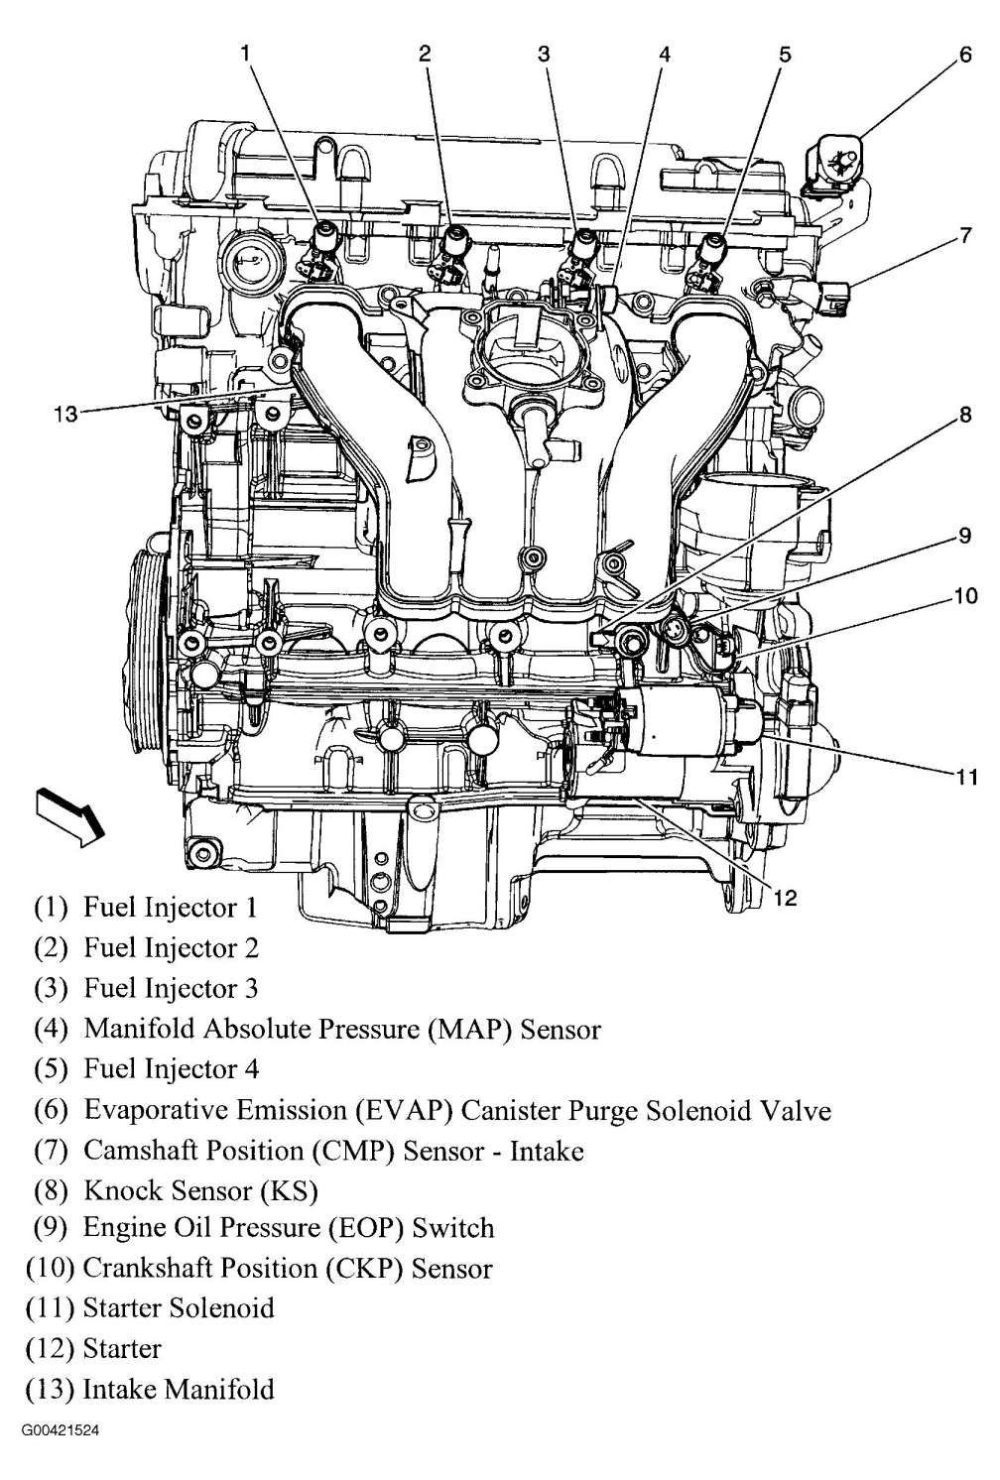 3 1 Liter Gm Engine Oiling Diagram | Data Wirings seat | Chevy 3 4 L Engine Diagram Free Download |  | wiring diagram library